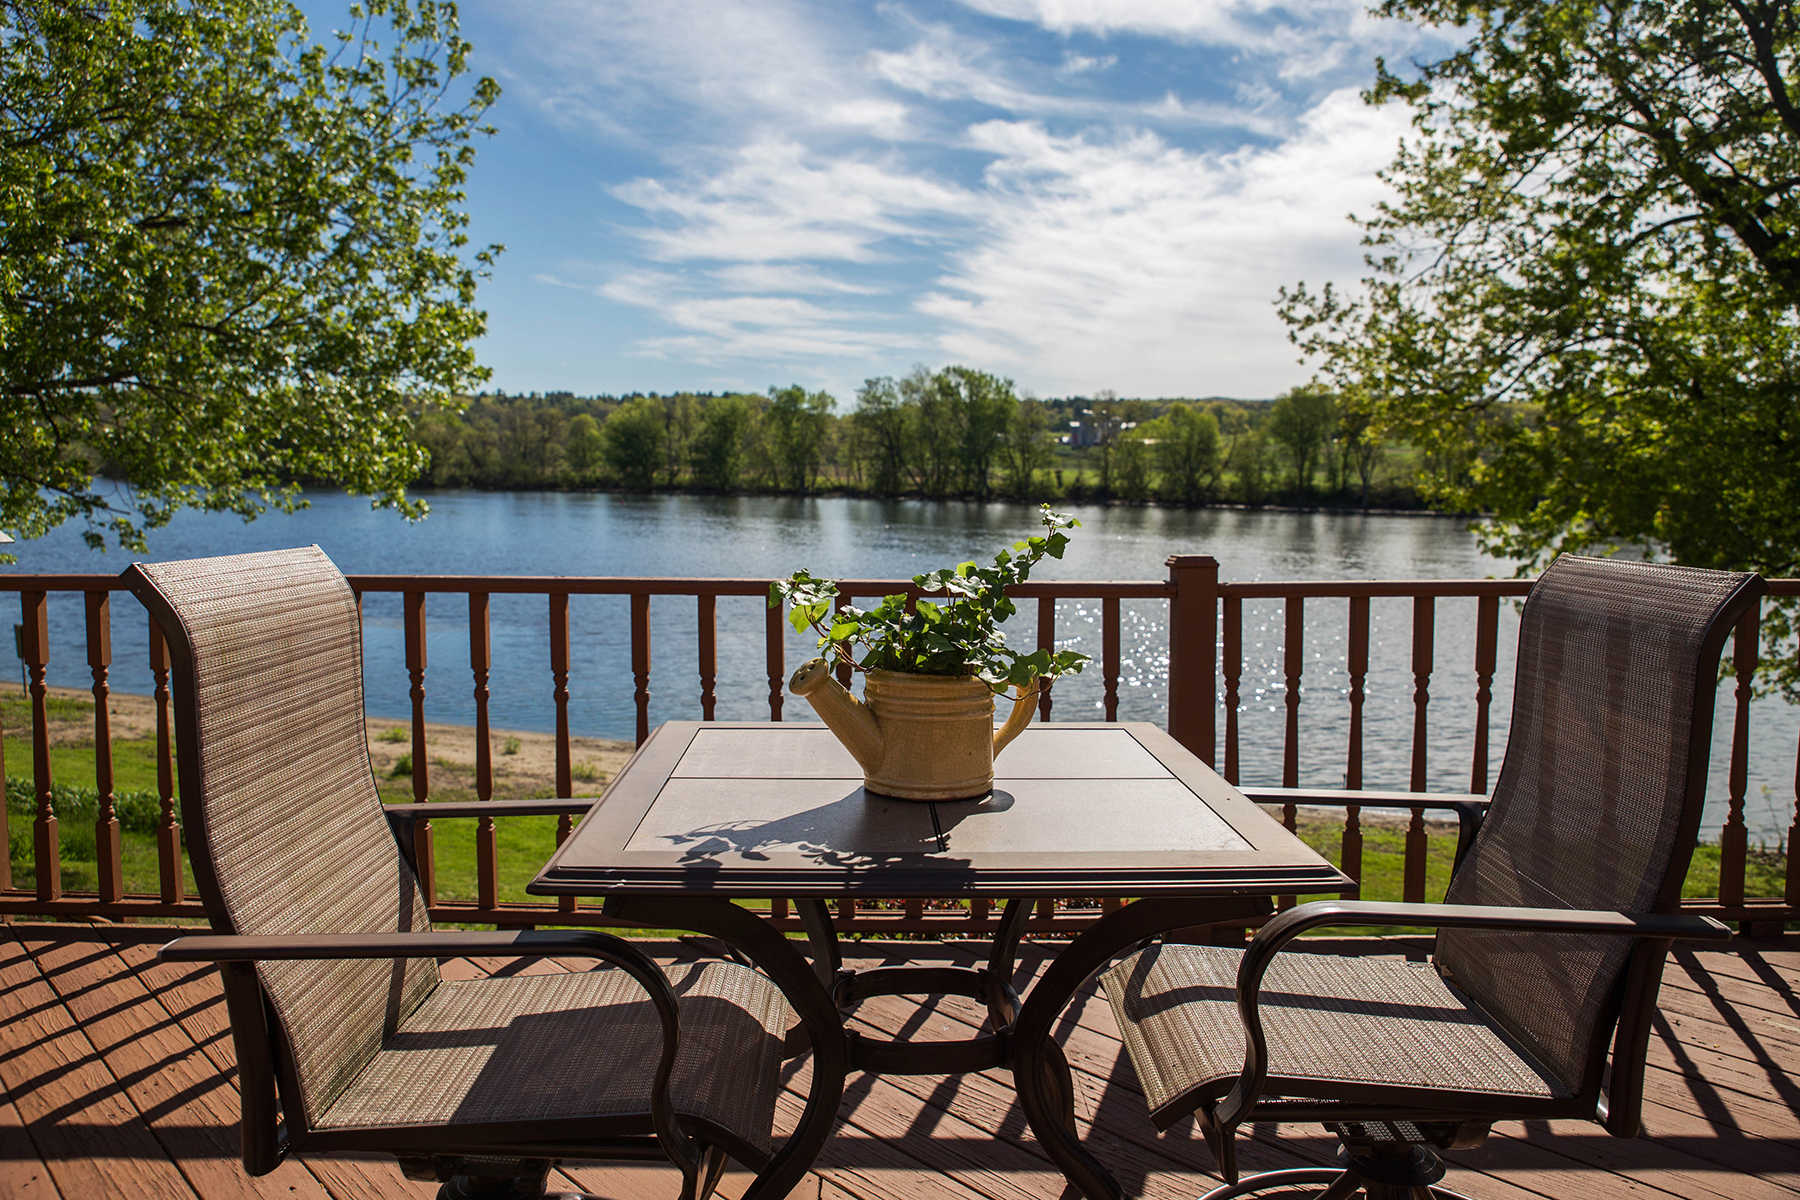 Single Family Home for Sale at Waterfront Compound On The Hudson River 110 Garnsey Ln Schuylerville, New York 12871 United States